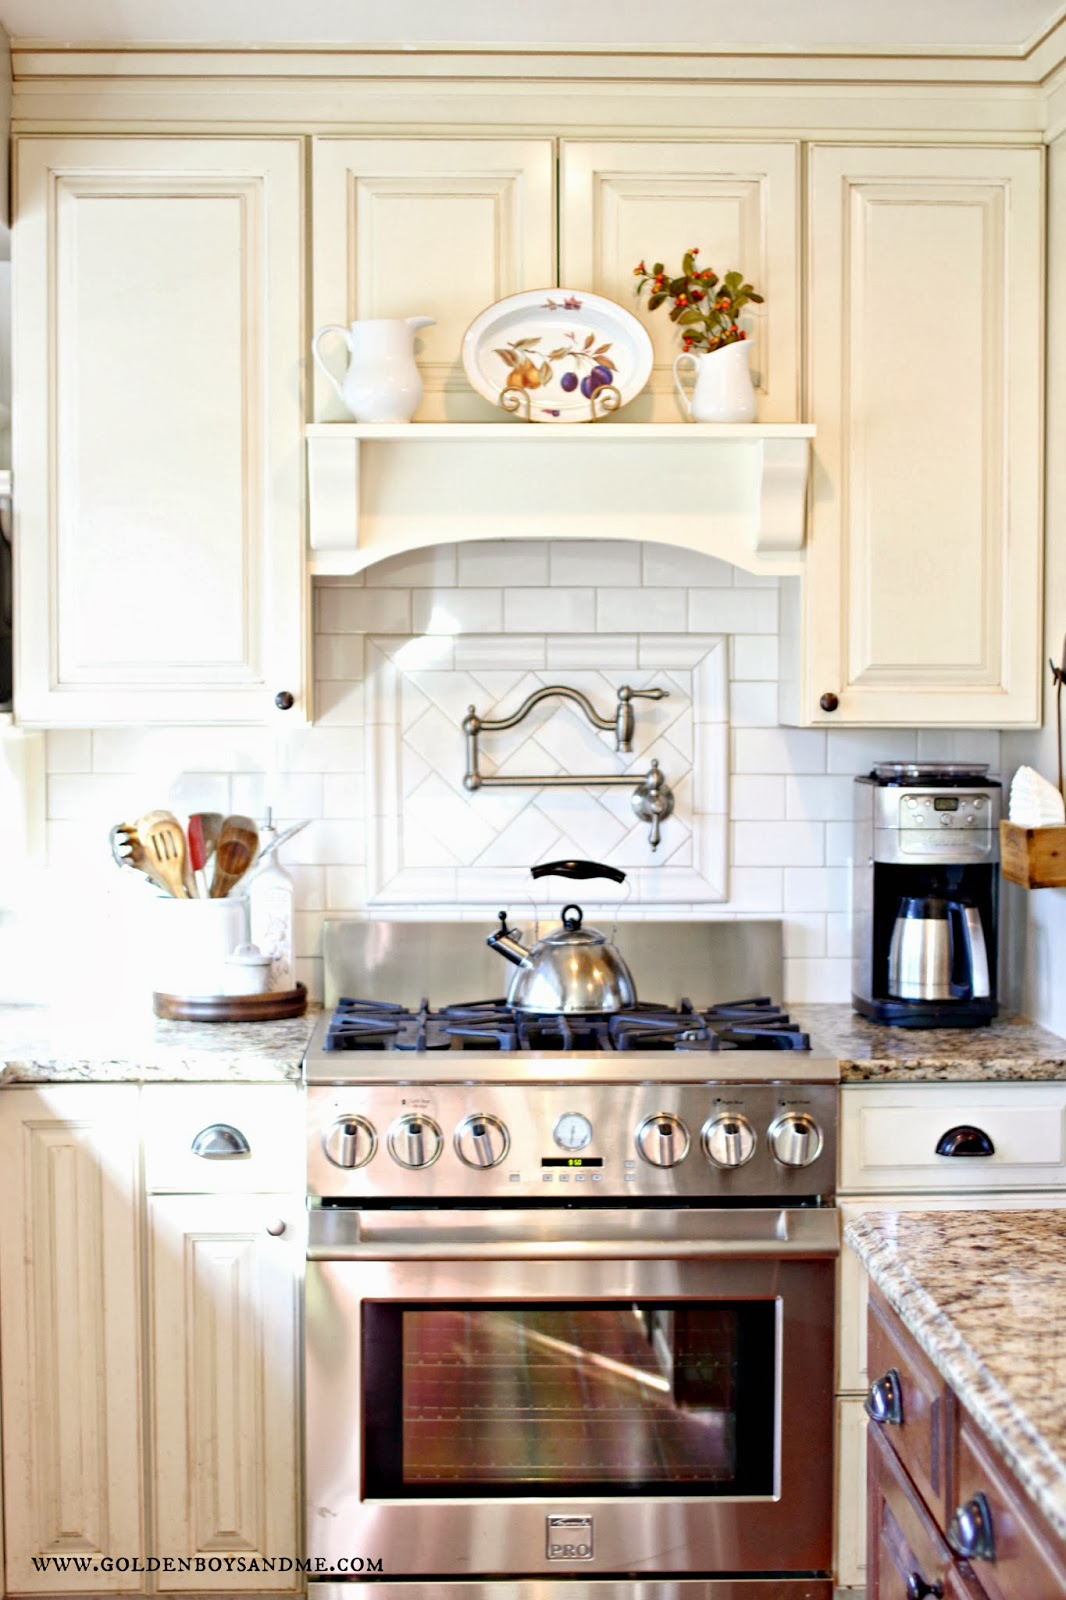 Golden Boys And Me: Our {Latest} Kitchen Makeover Reveal